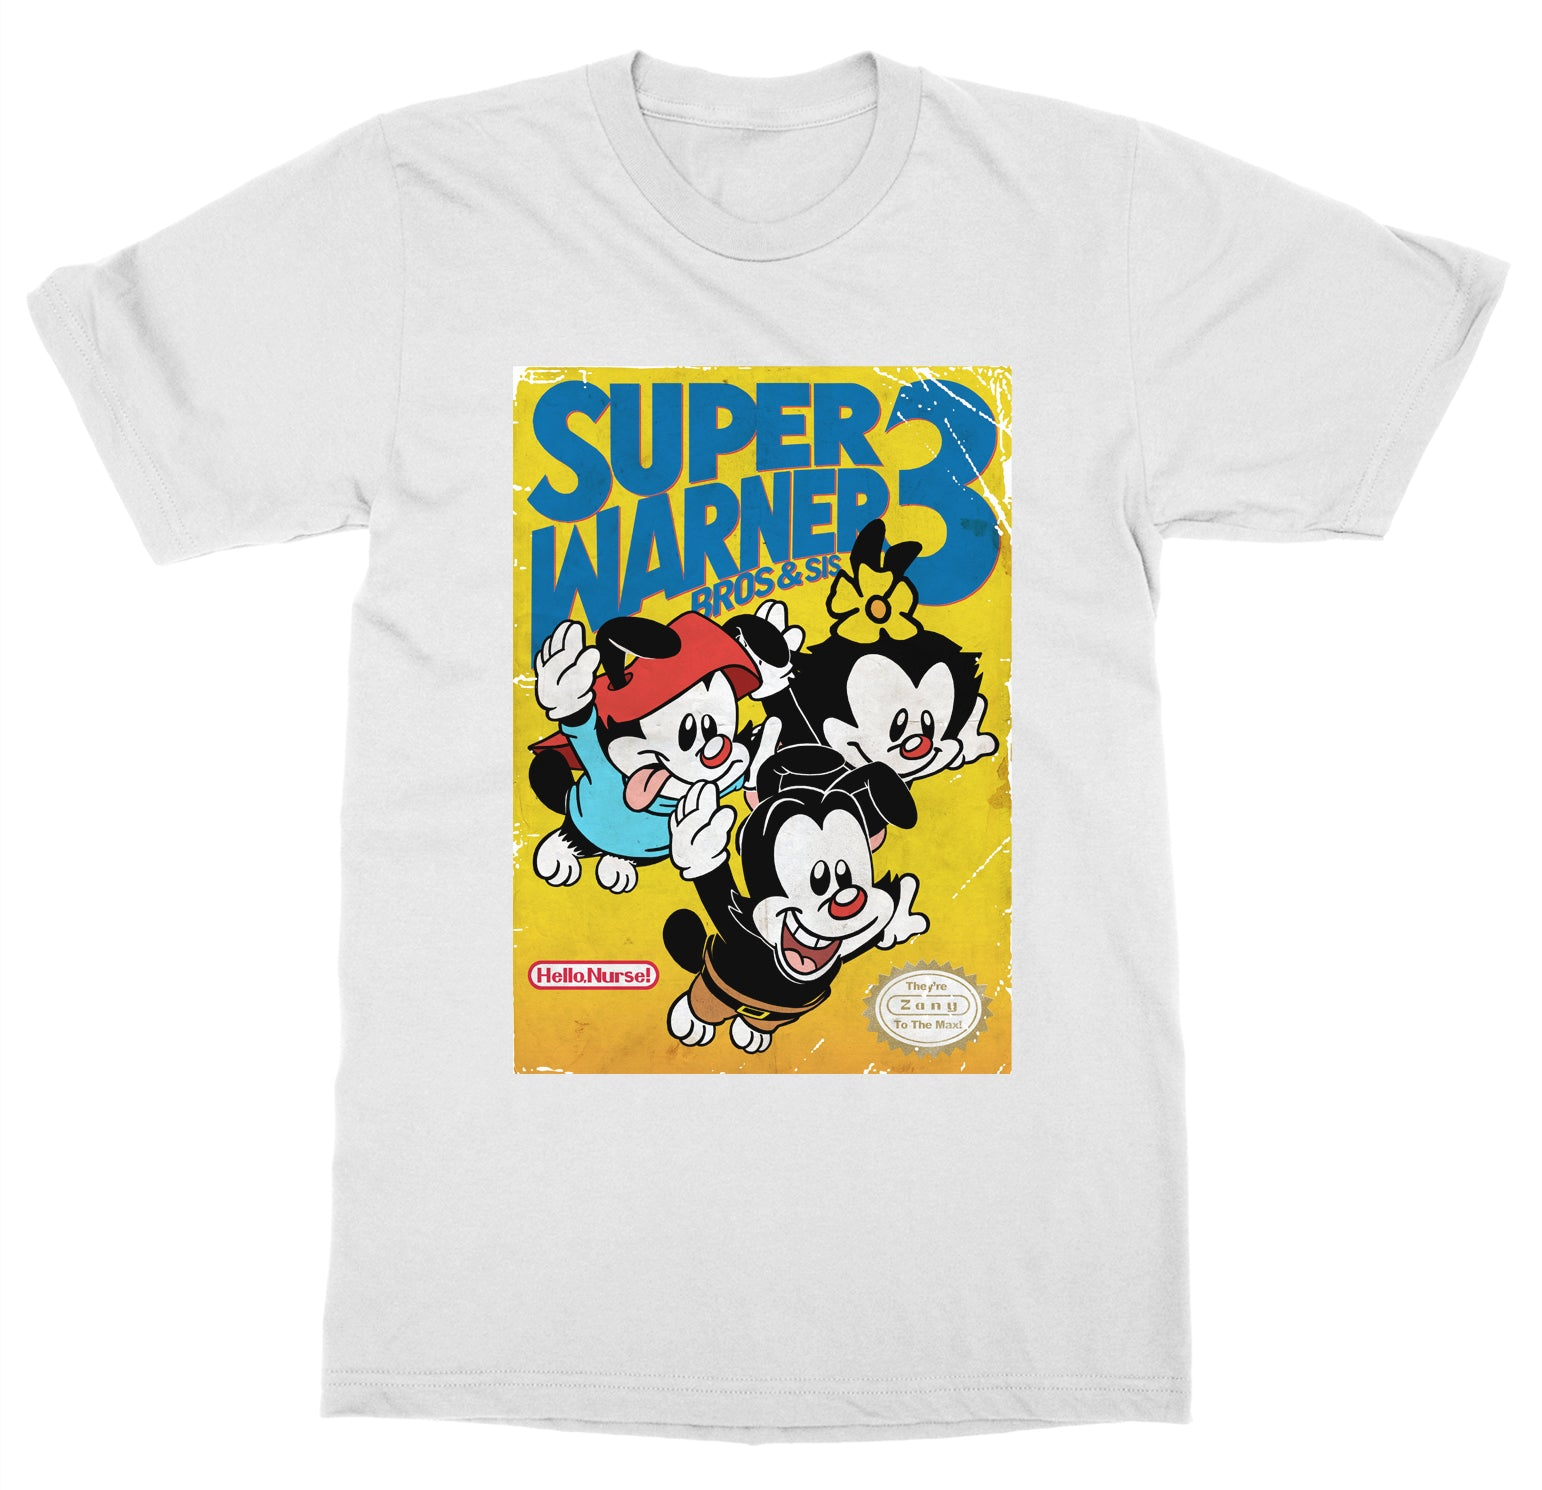 9832320a2a24 Super Warner Bros and Sis T-Shirt – Fun Times Tees